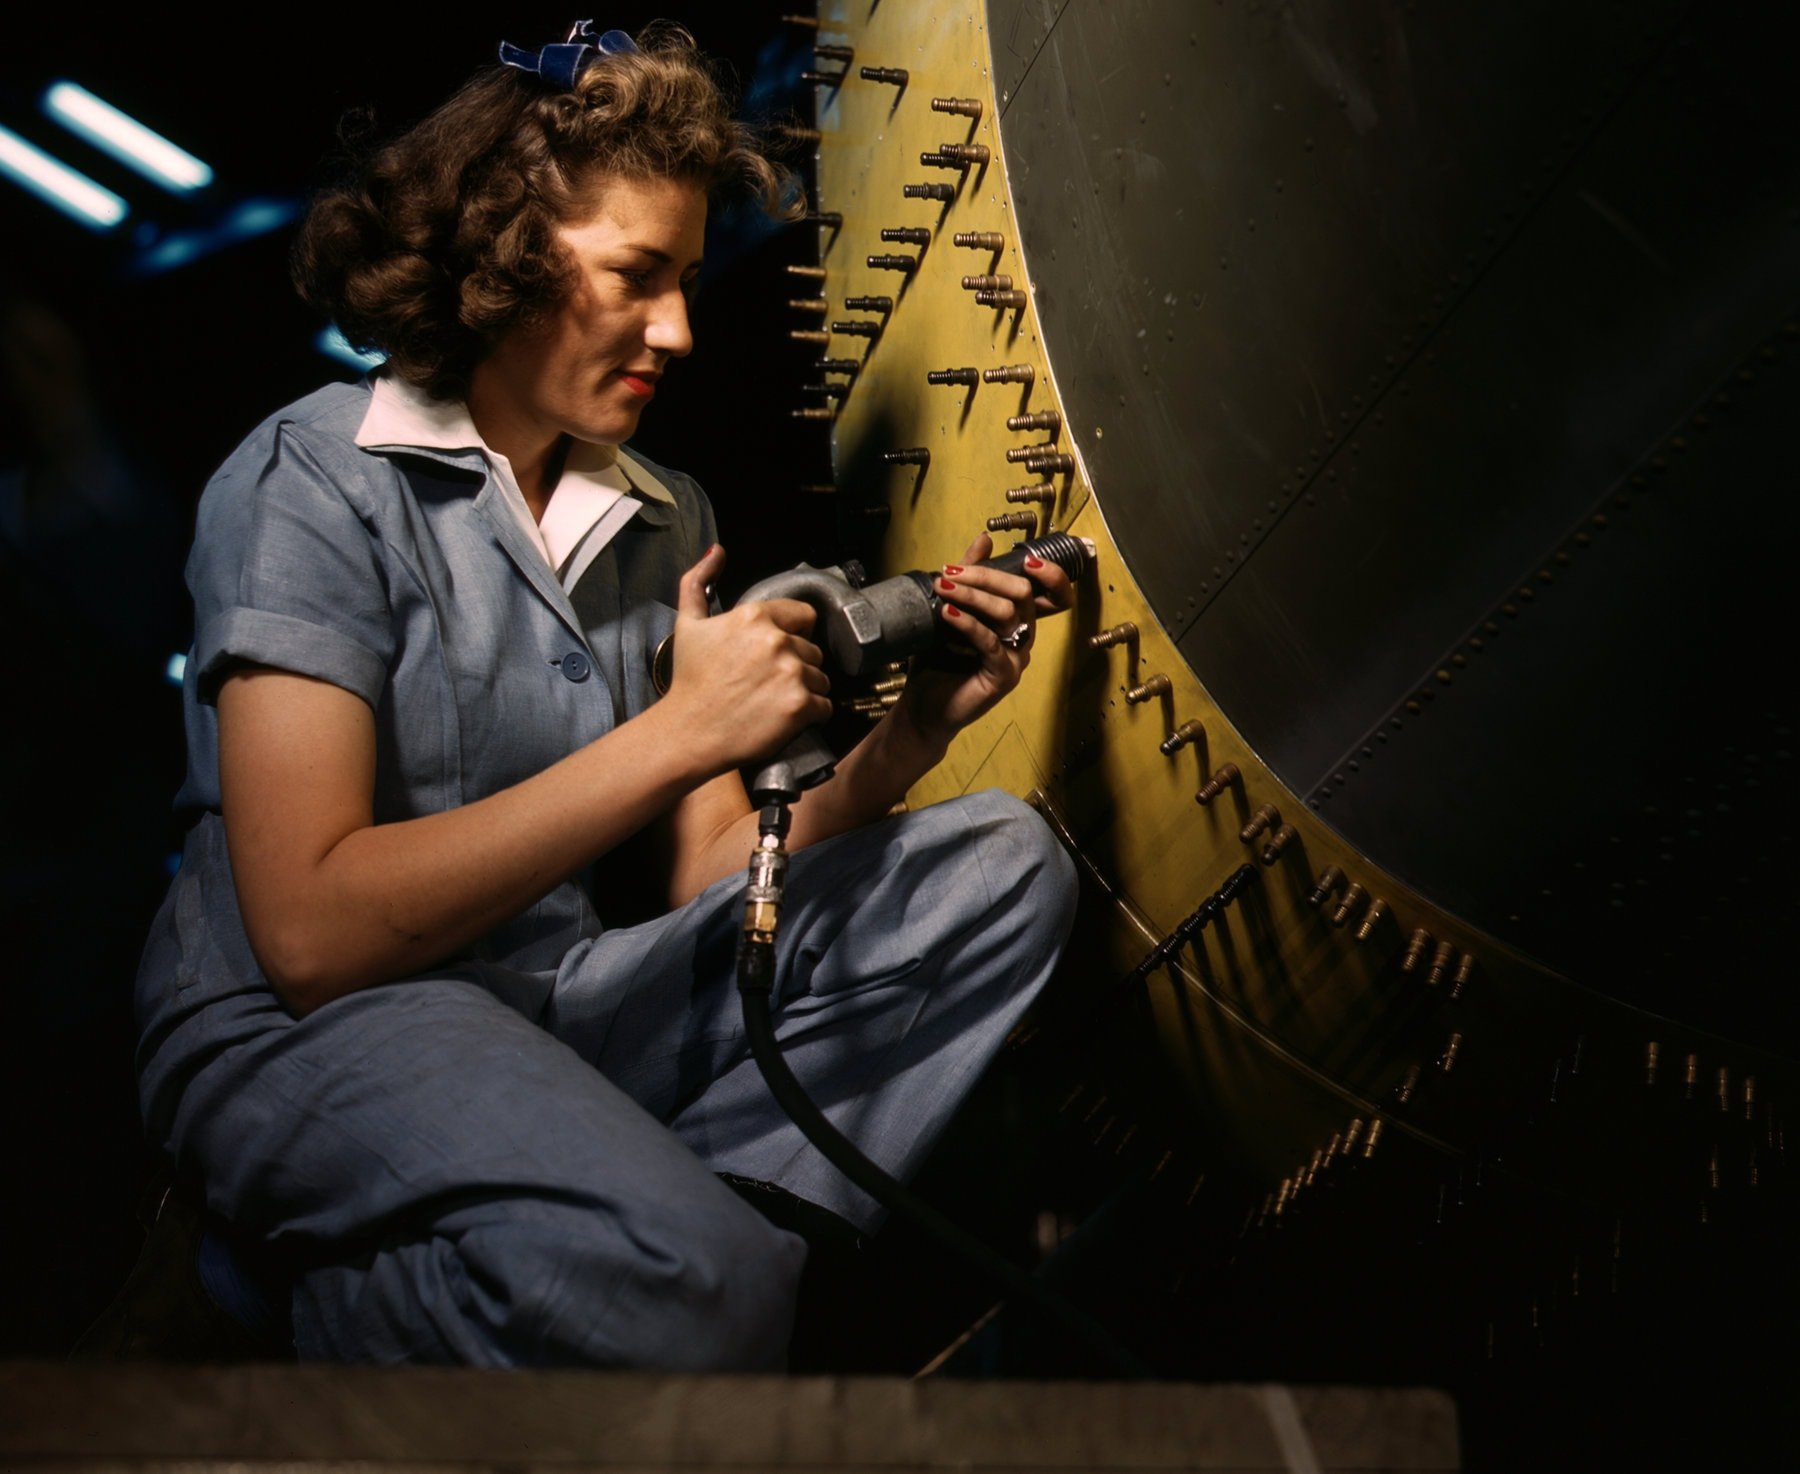 Riveting a Consolidated bomber plane